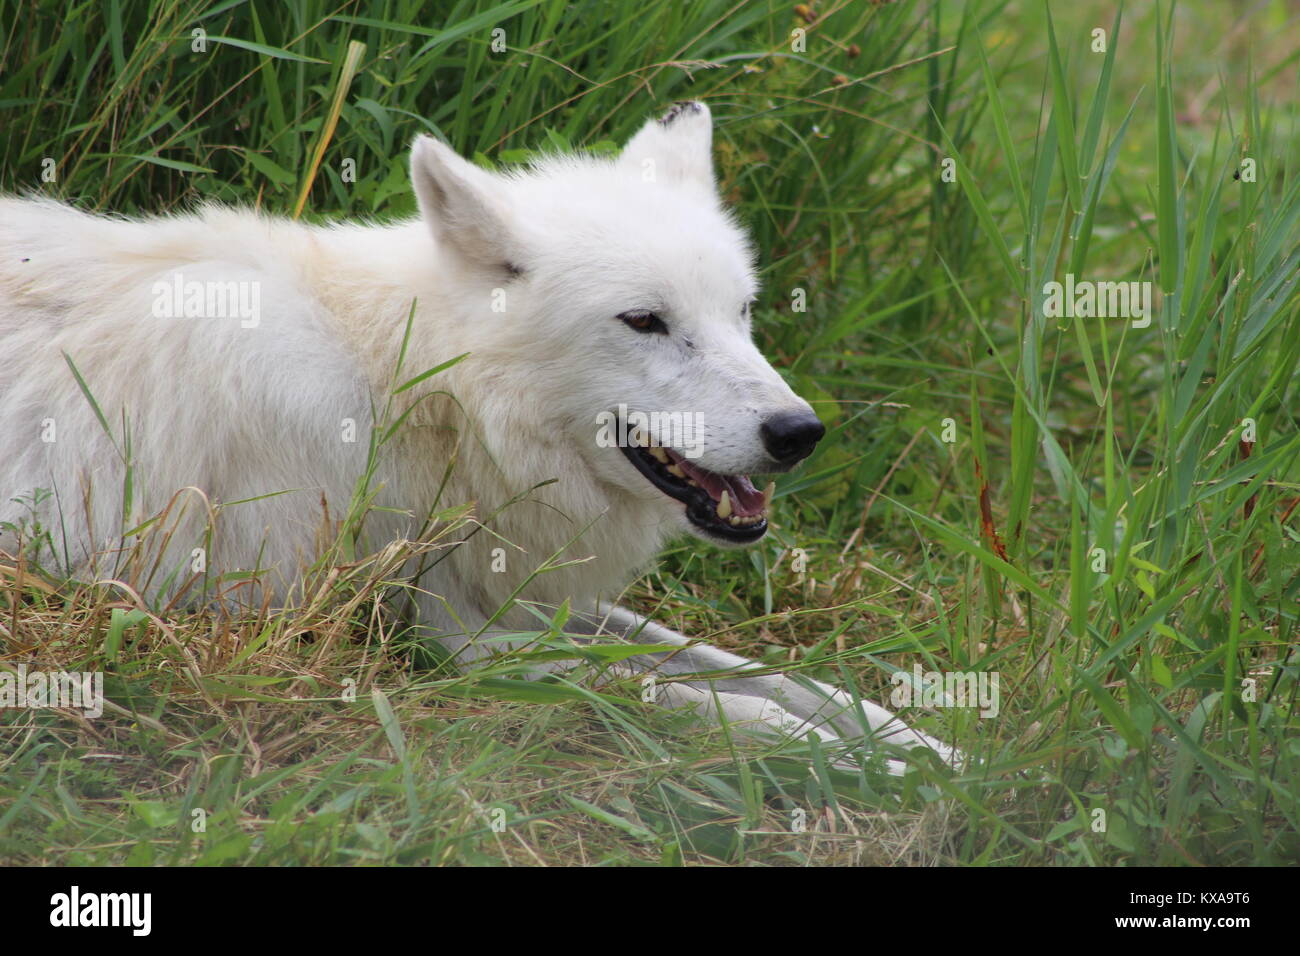 Canadian arctic wolf laying in the grass on a hot summer day. - Stock Image